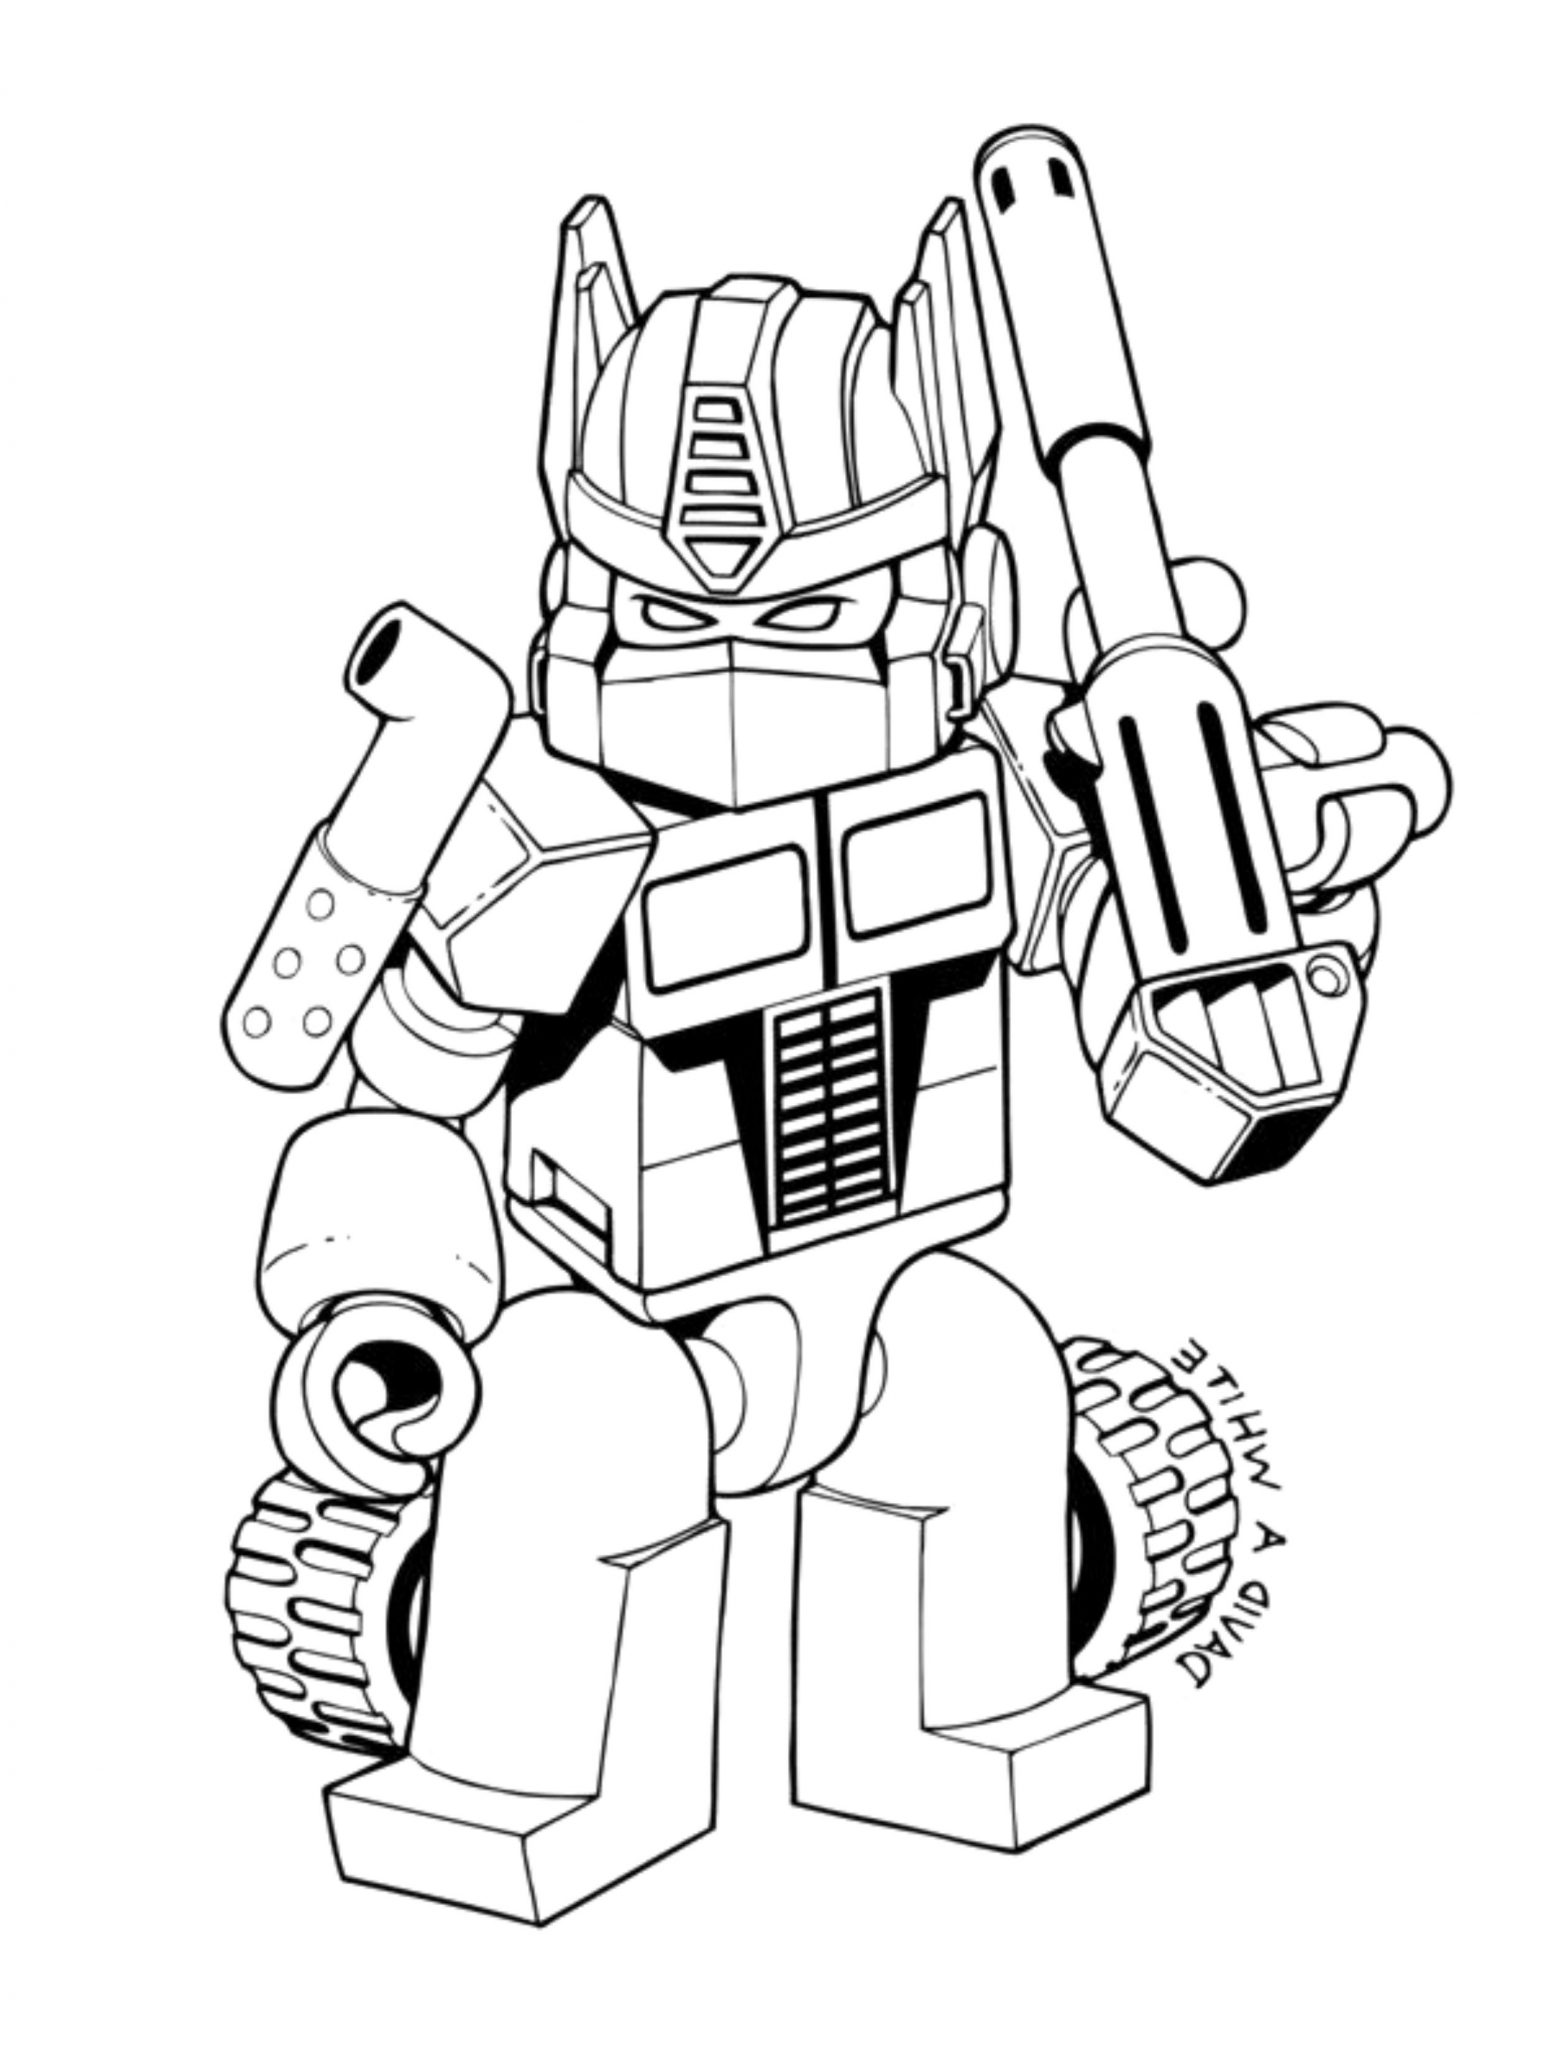 Lego Transformers Coloring Pages Bestappsforkids Com